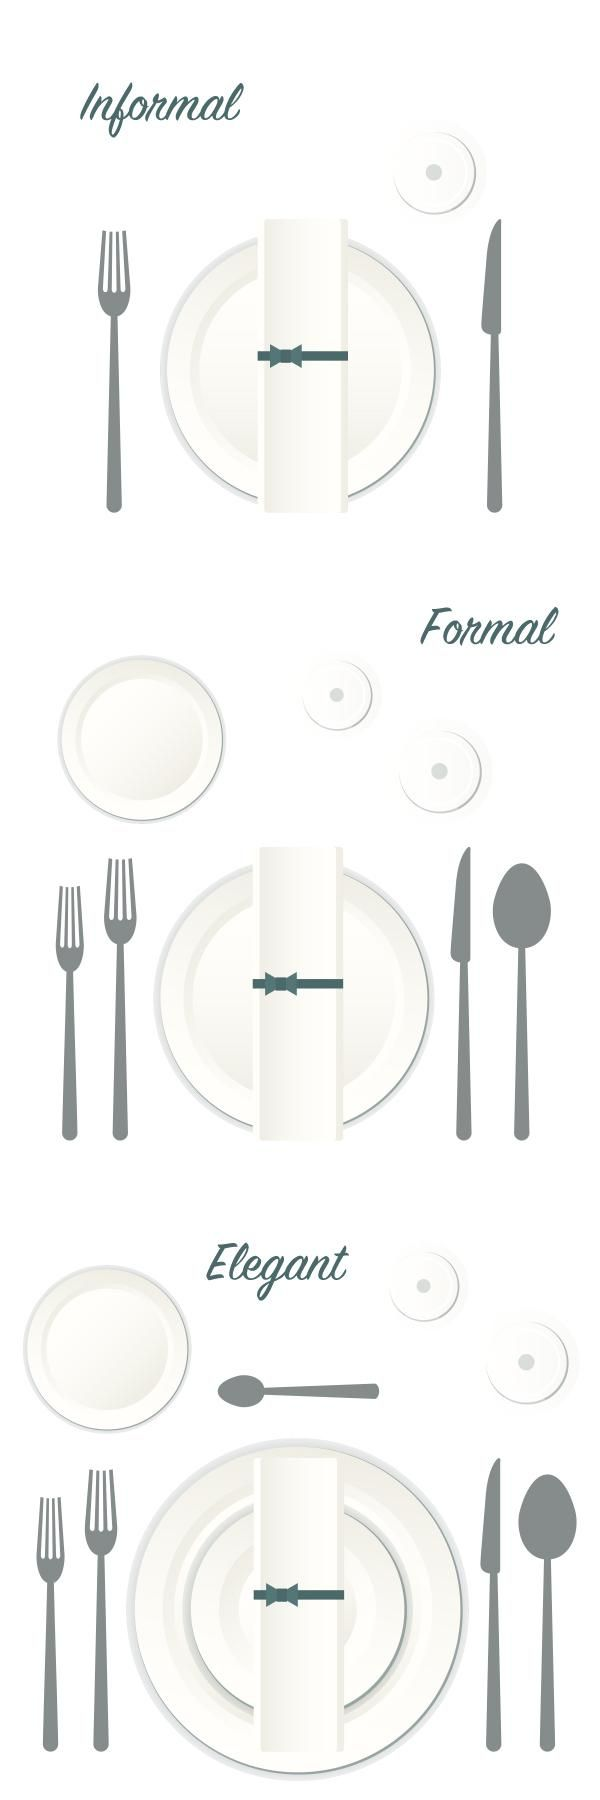 Formal dinner table decorations  best table settings images on pinterest  table manners